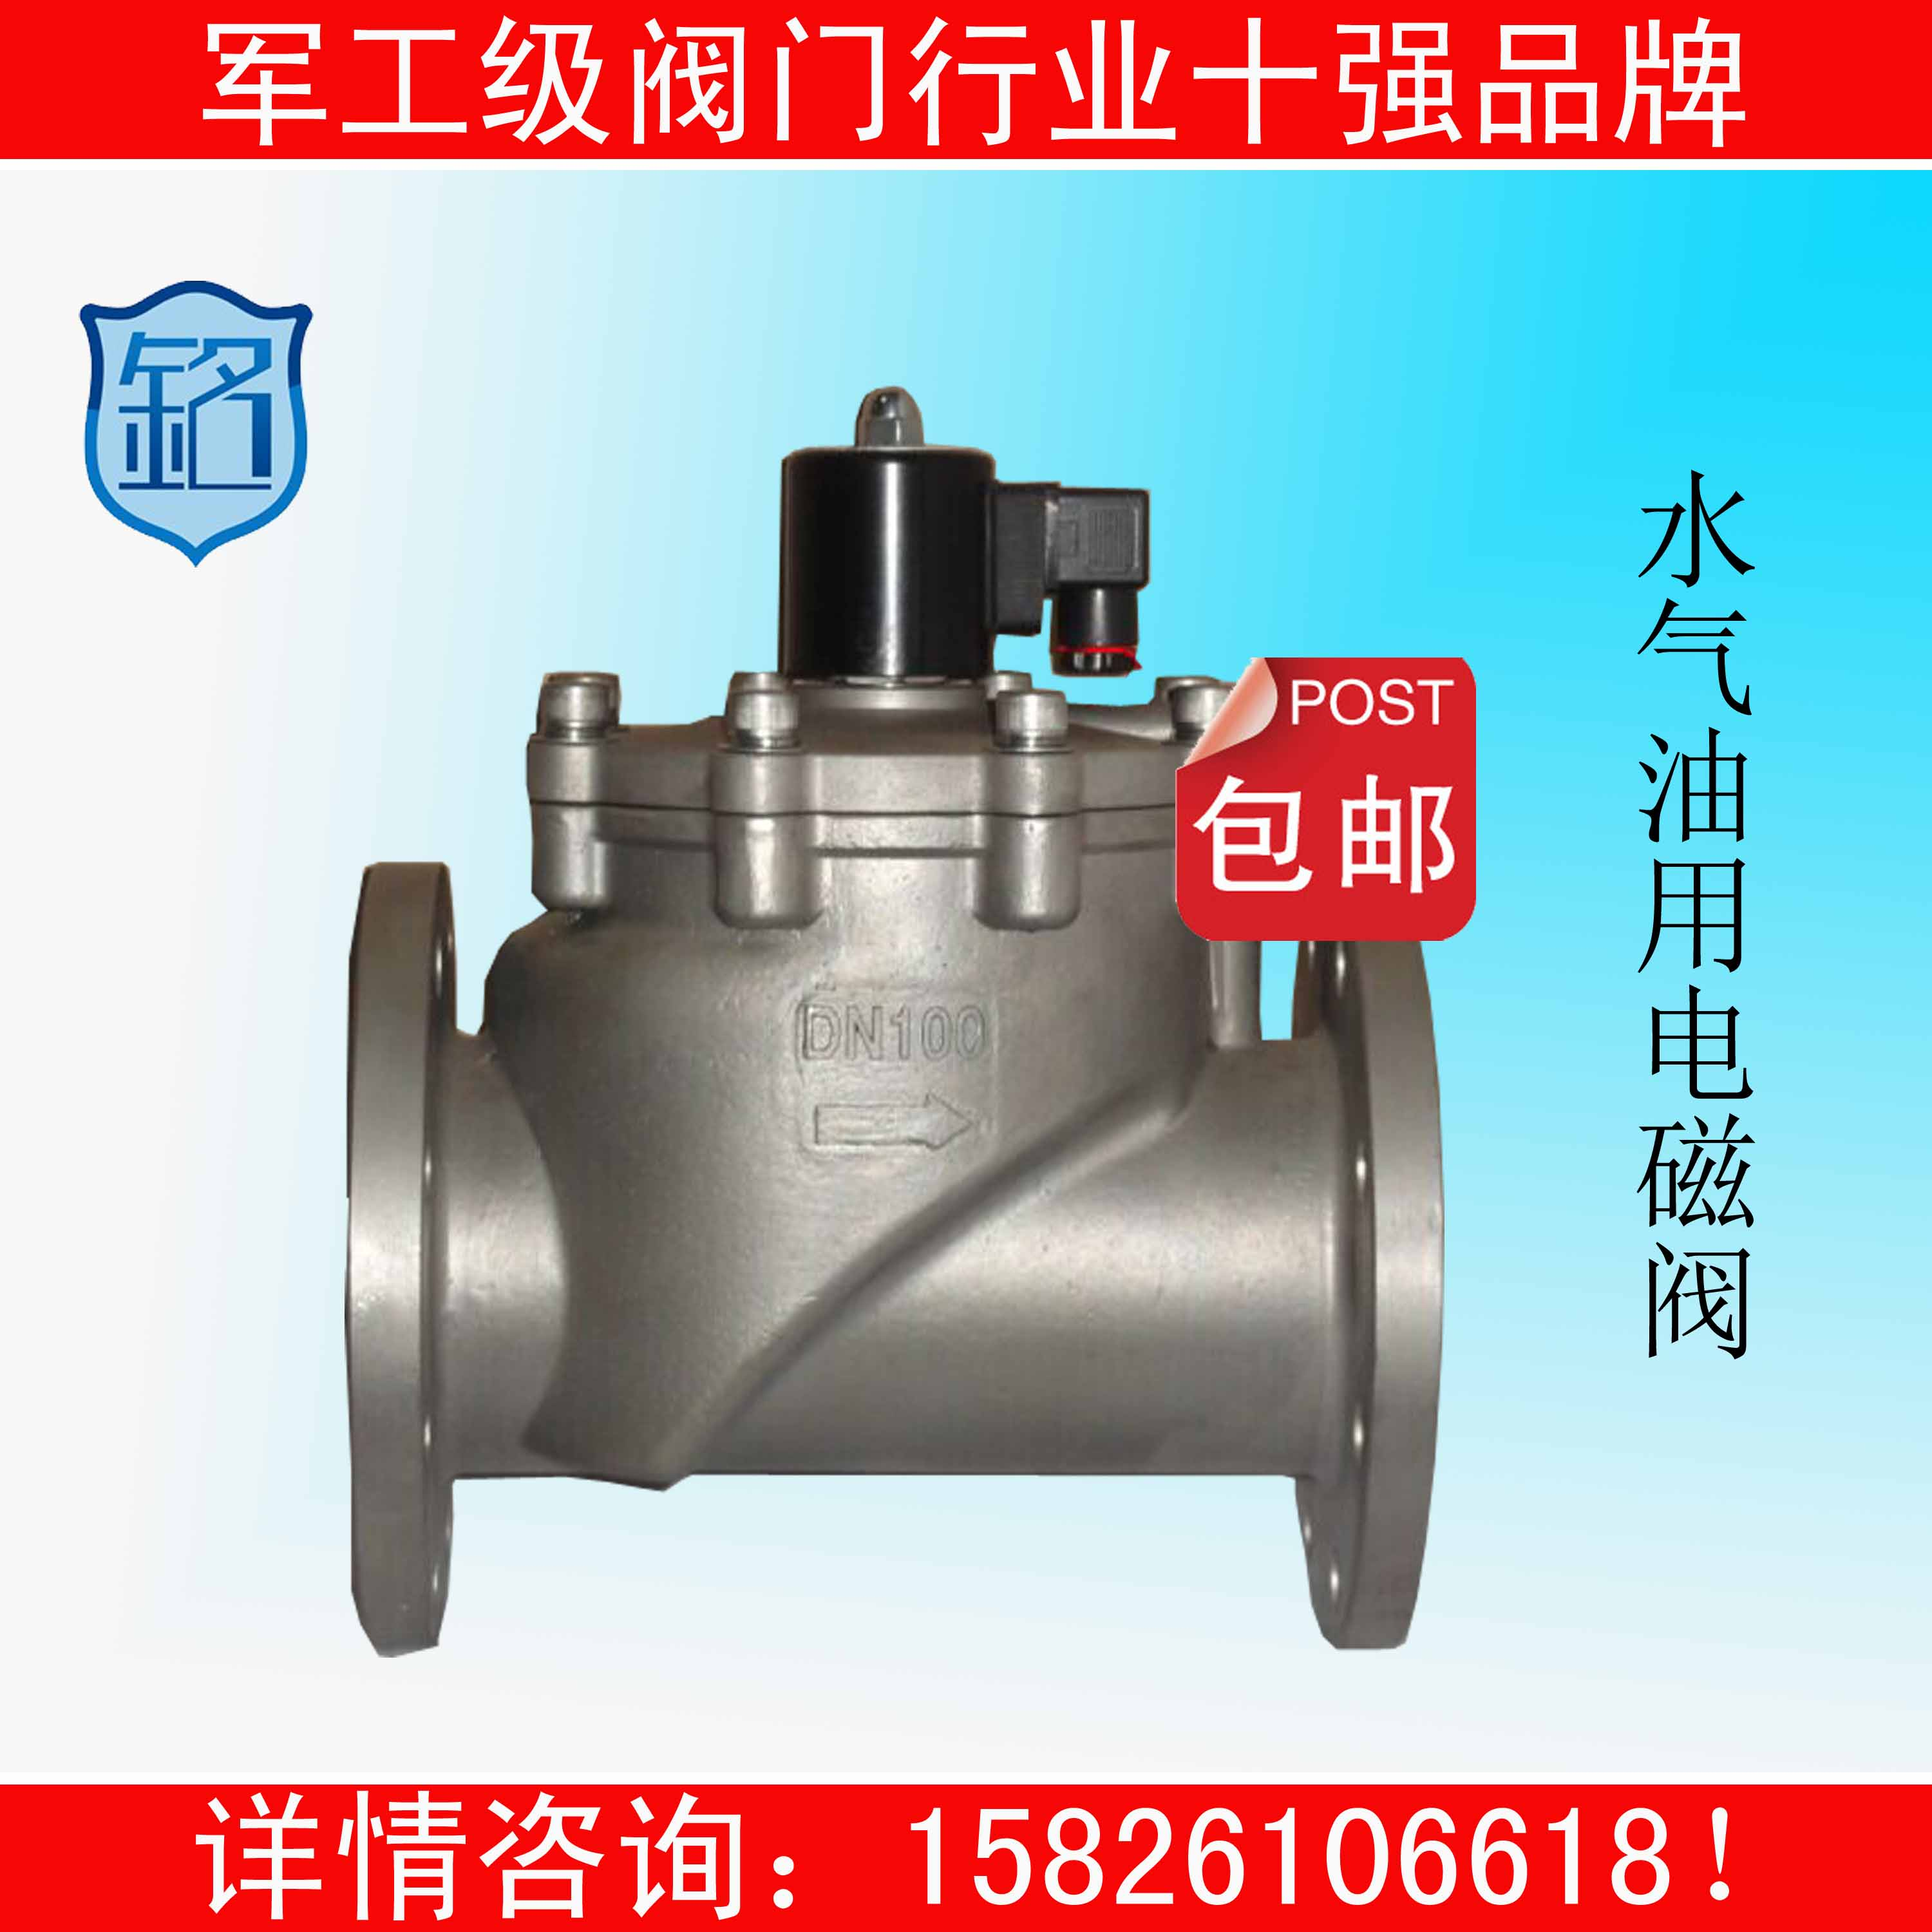 Factory direct DN100 stainless steel pilot piston flange connection normally closed / normally open / self maintained solenoid valve